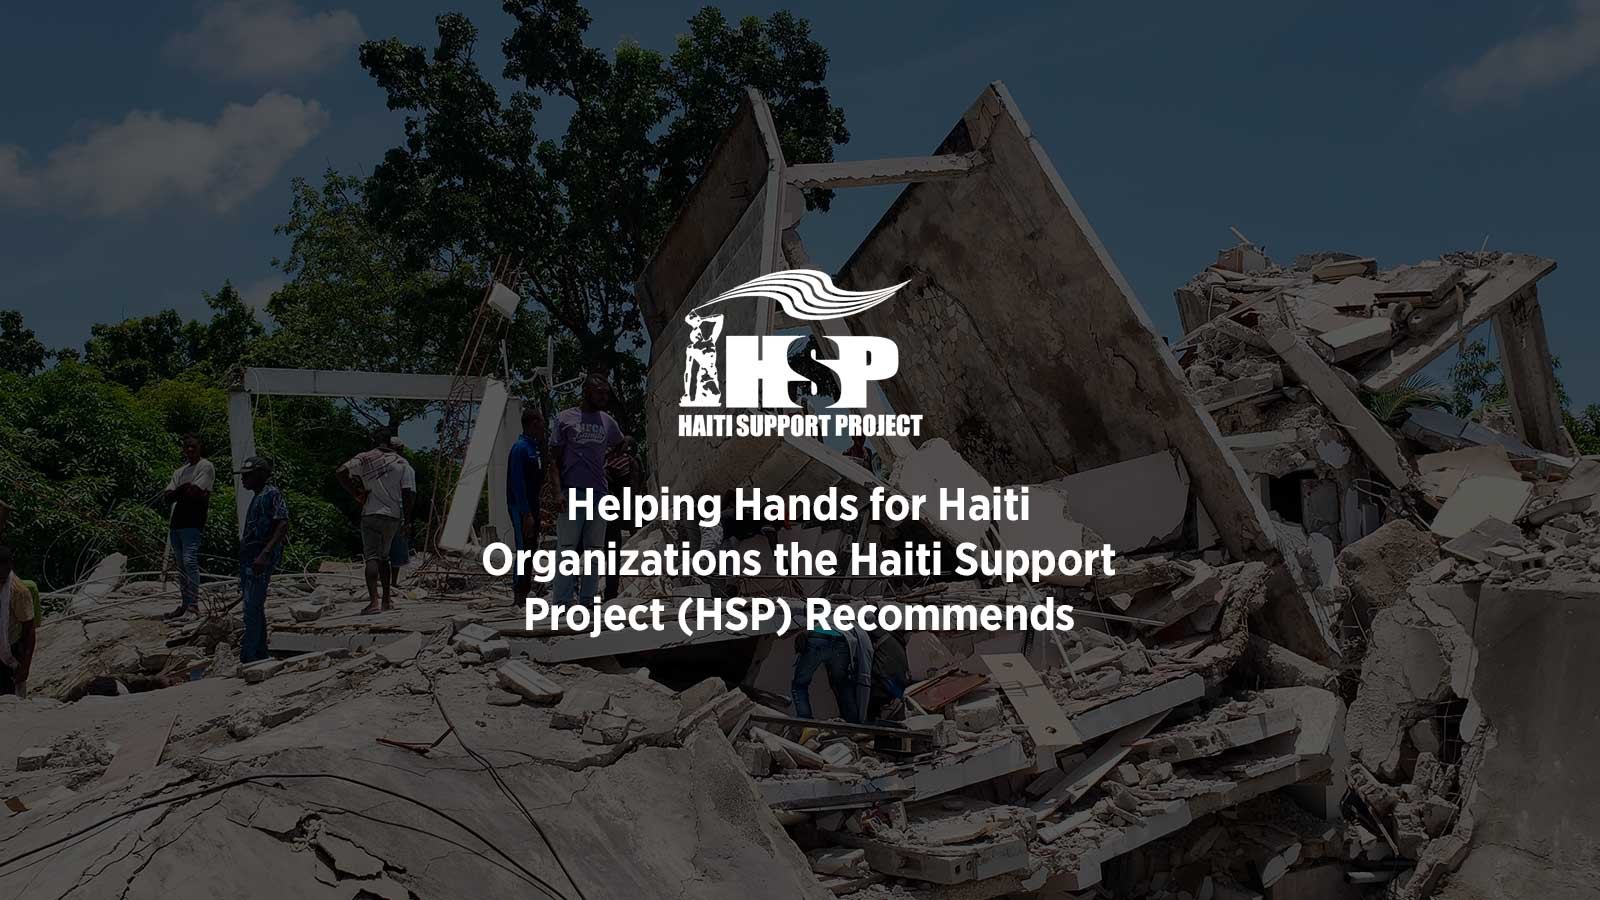 Helping Hands for Haiti Organizations the Haiti Support Project (HSP) Recommends